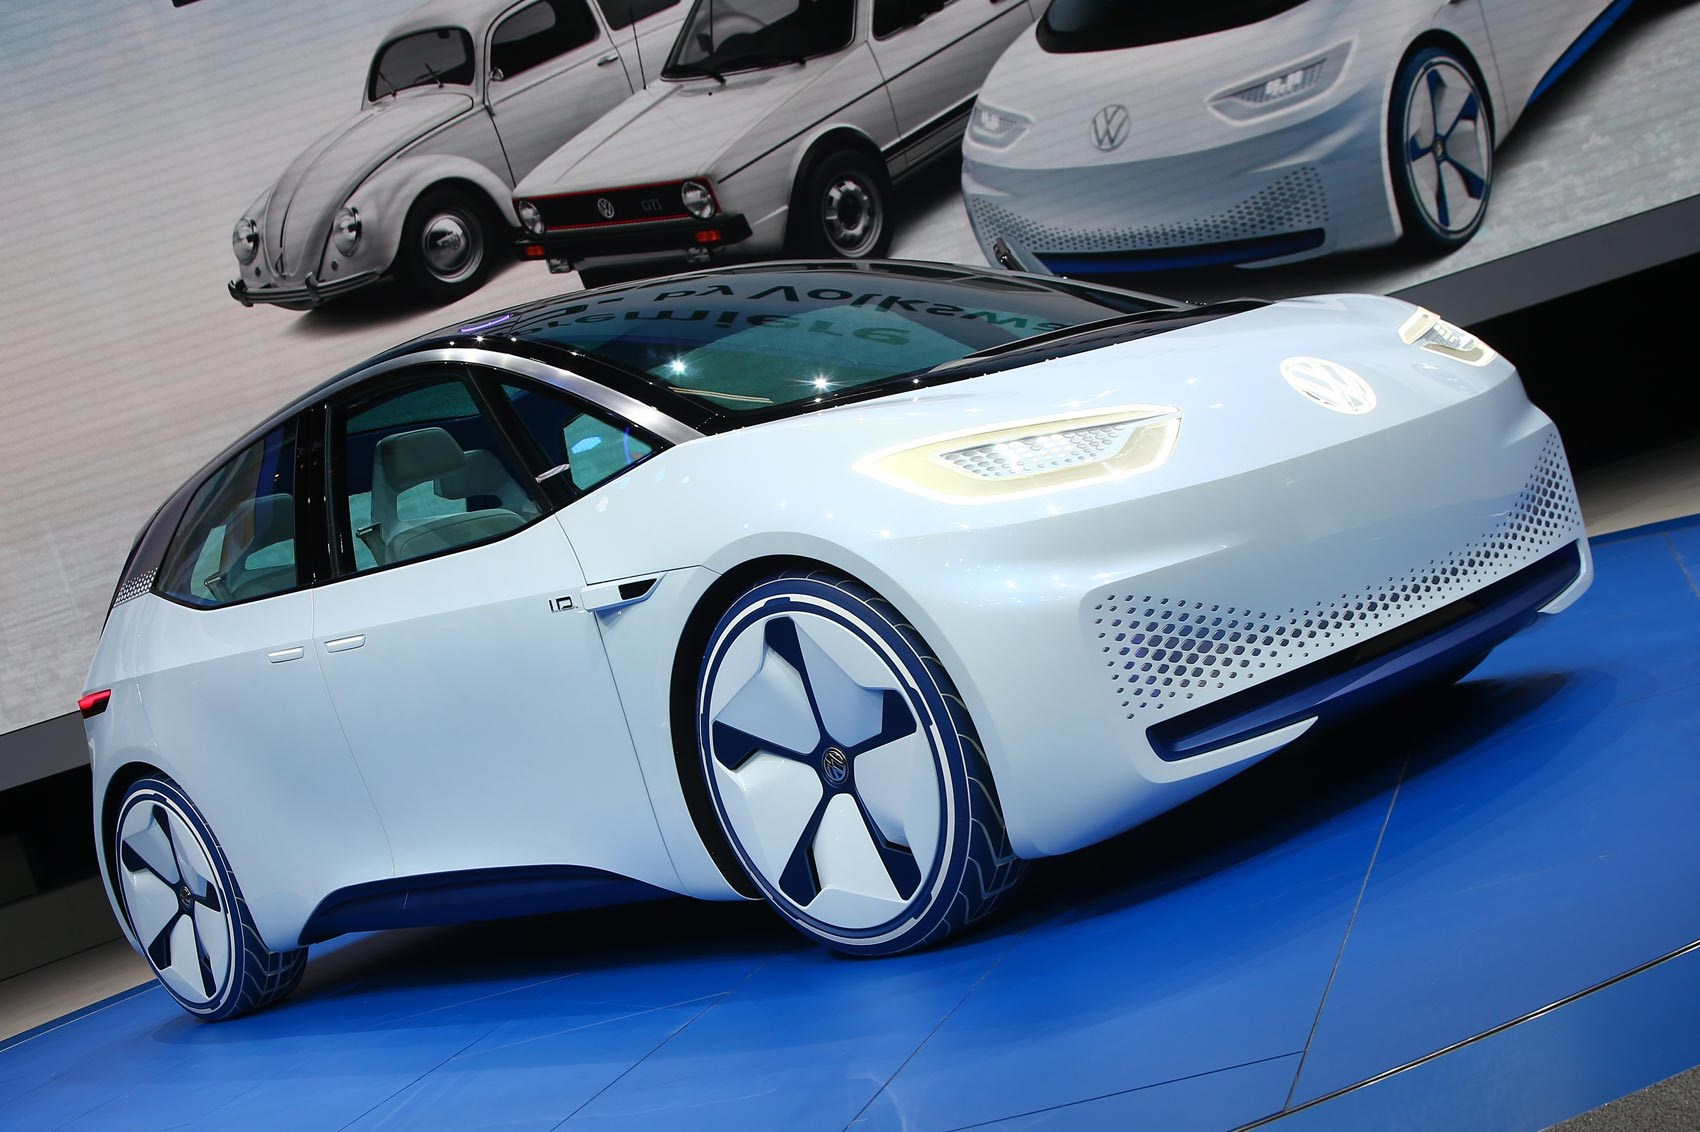 Visionary I.D. heralds VW's all-electric future | CAR Magazine